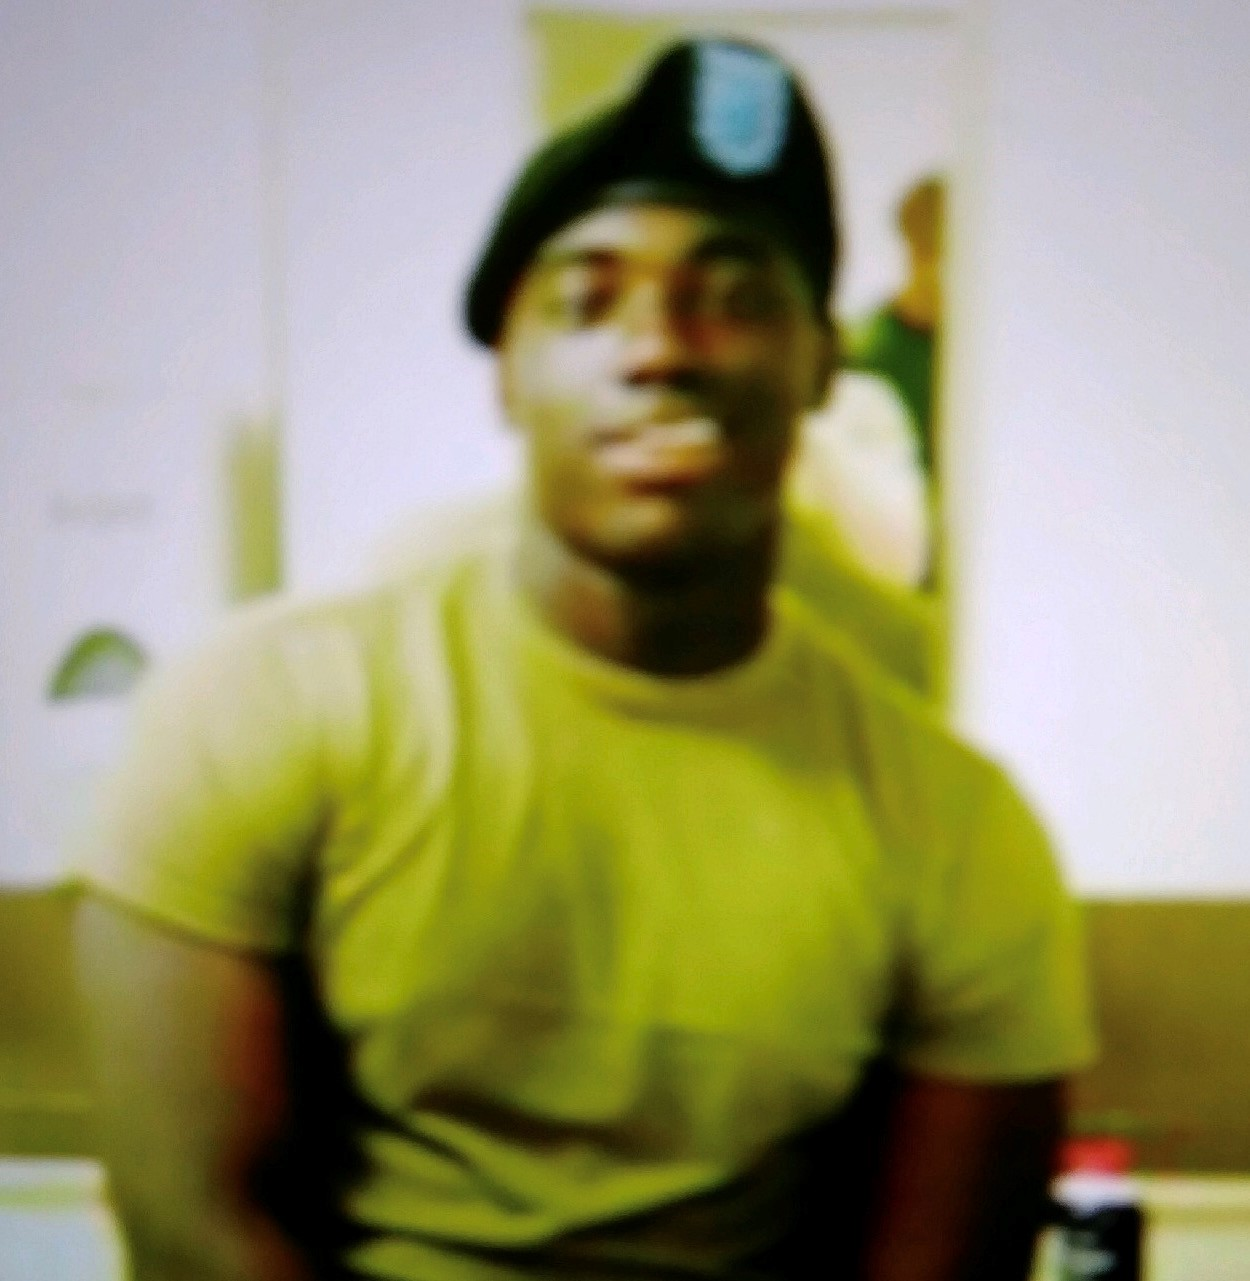 <div class='meta'><div class='origin-logo' data-origin='none'></div><span class='caption-text' data-credit=''>Emmanuel Mensah was 28 years old. He was on the third floor of the building.</span></div>